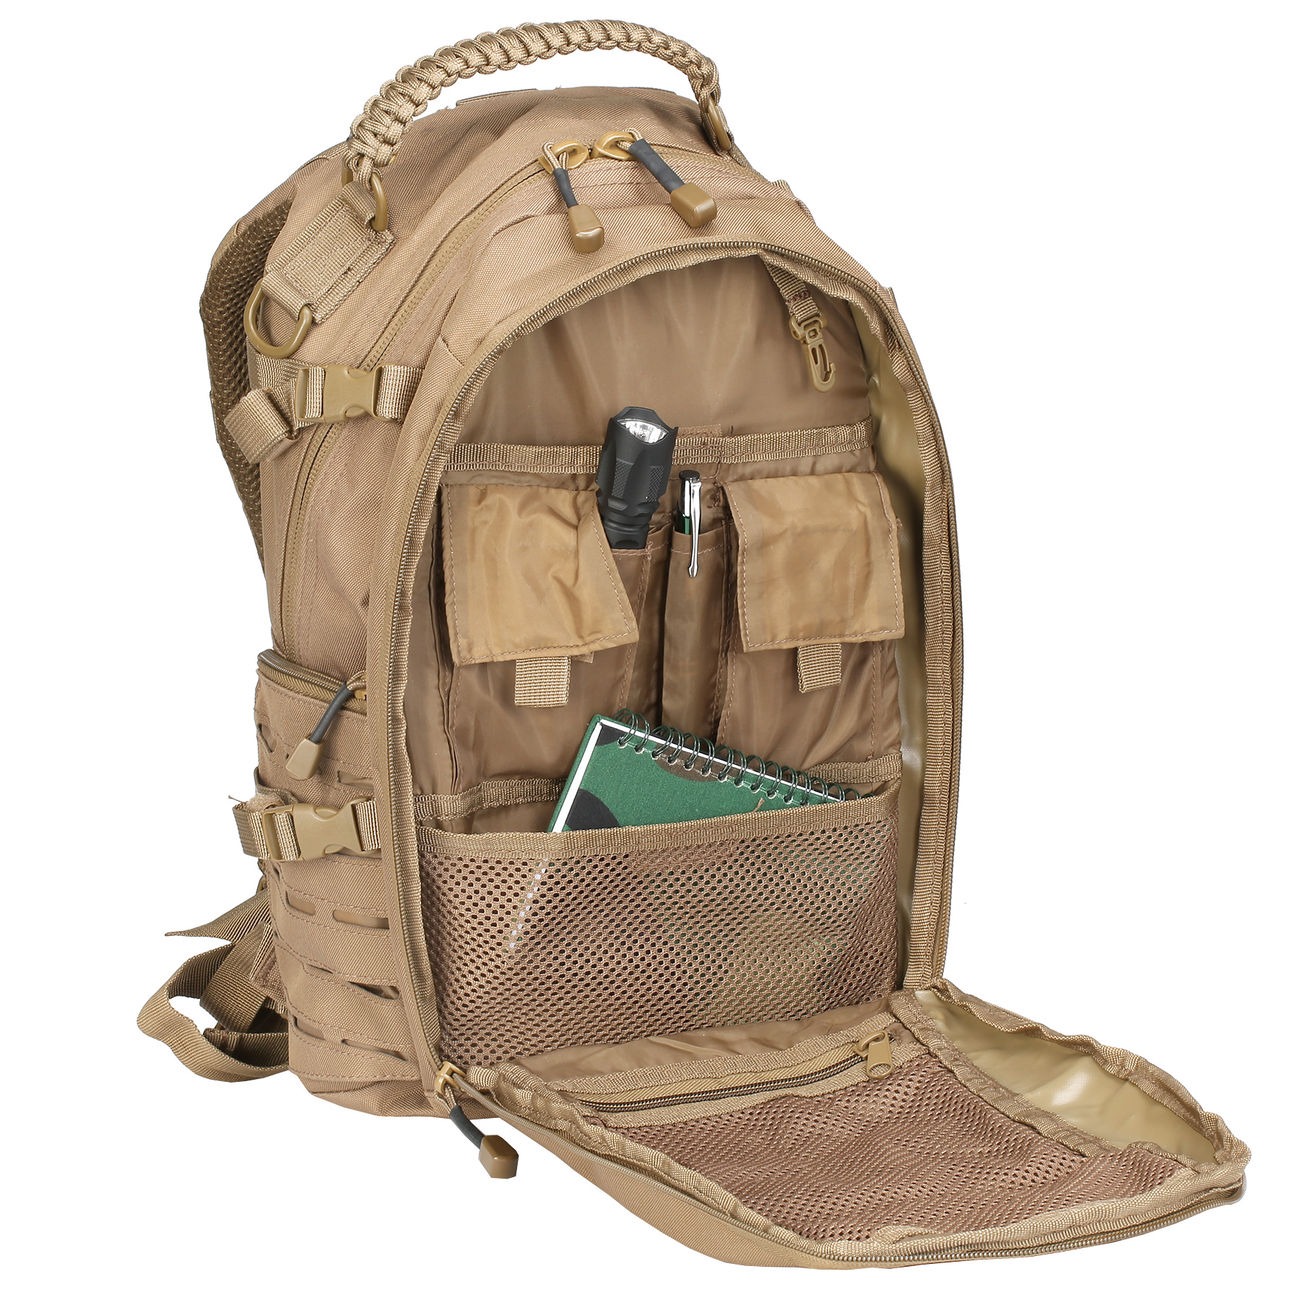 Mil-Tec Rucksack Mission Pack Laser Cut Small dark coyote 7